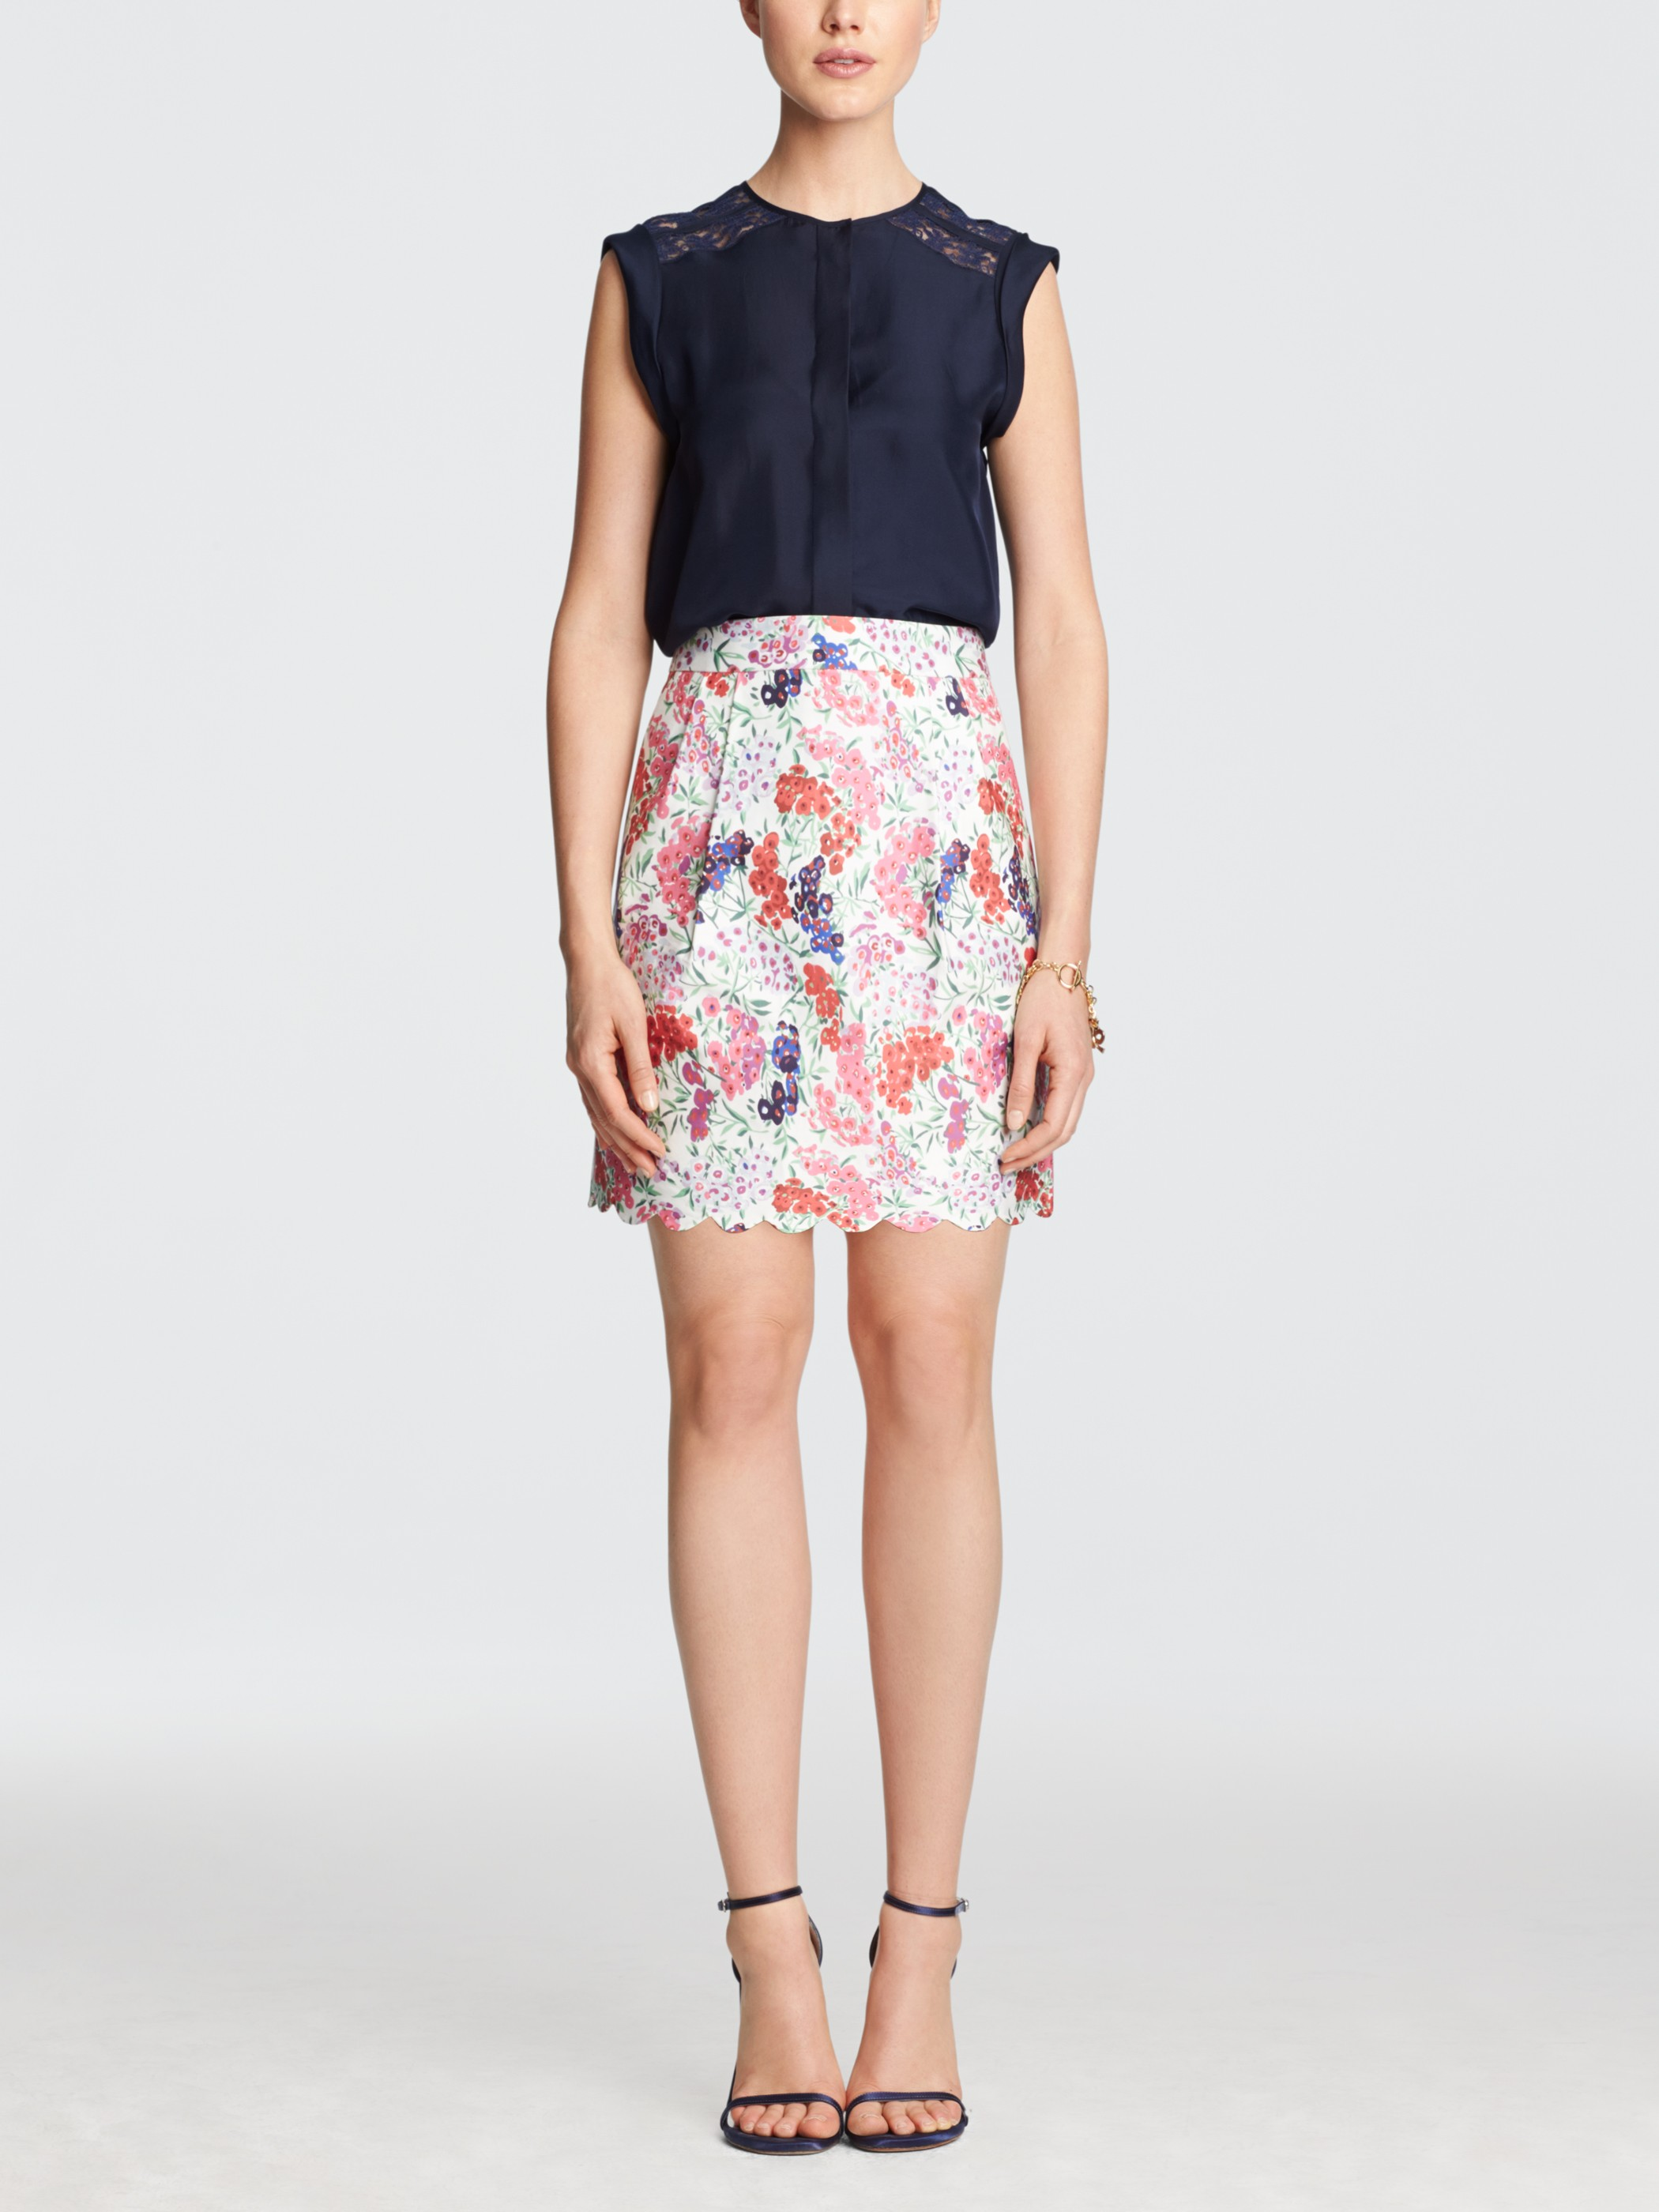 Printed Gilmore Skirt  - I love this skirt and there is one in solid navy as well! The feminine scalloped hem and side-seam pleated pockets set this little skirt to the top of my wish list!